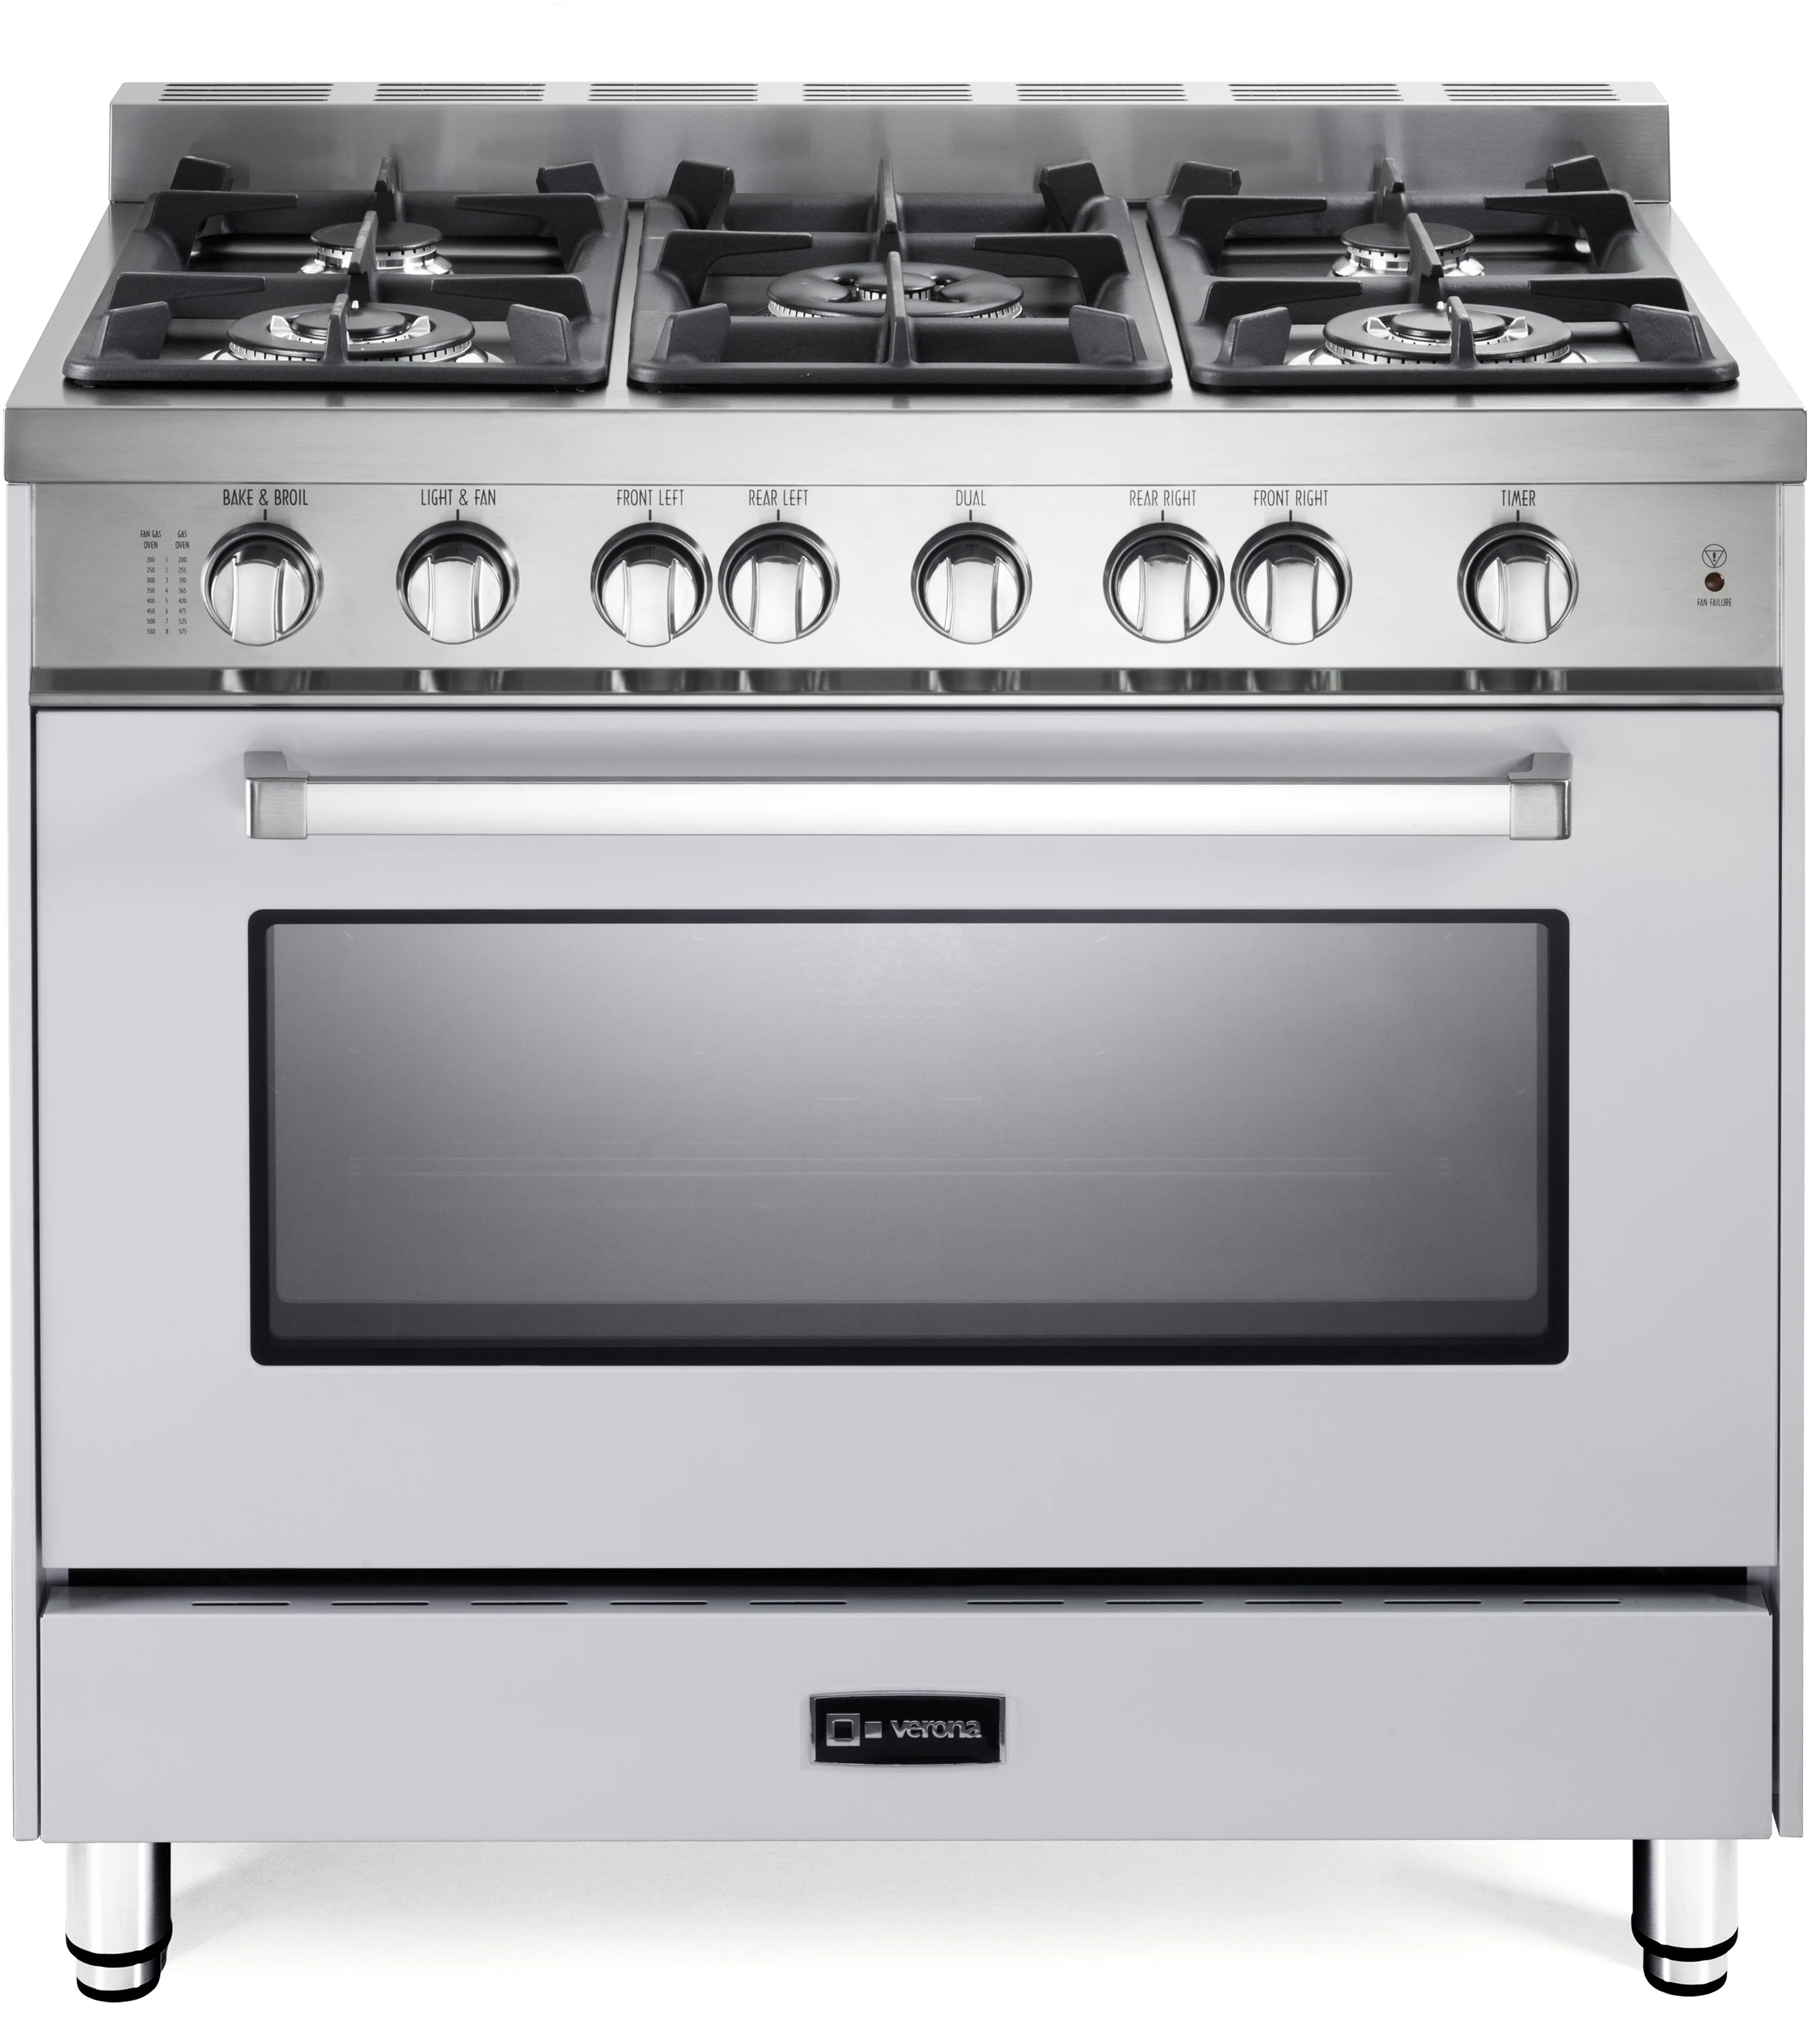 Gas Cooktop Installation Cost Verona Vefsgg365nw 36 Inch Pro Style Gas Range With 5